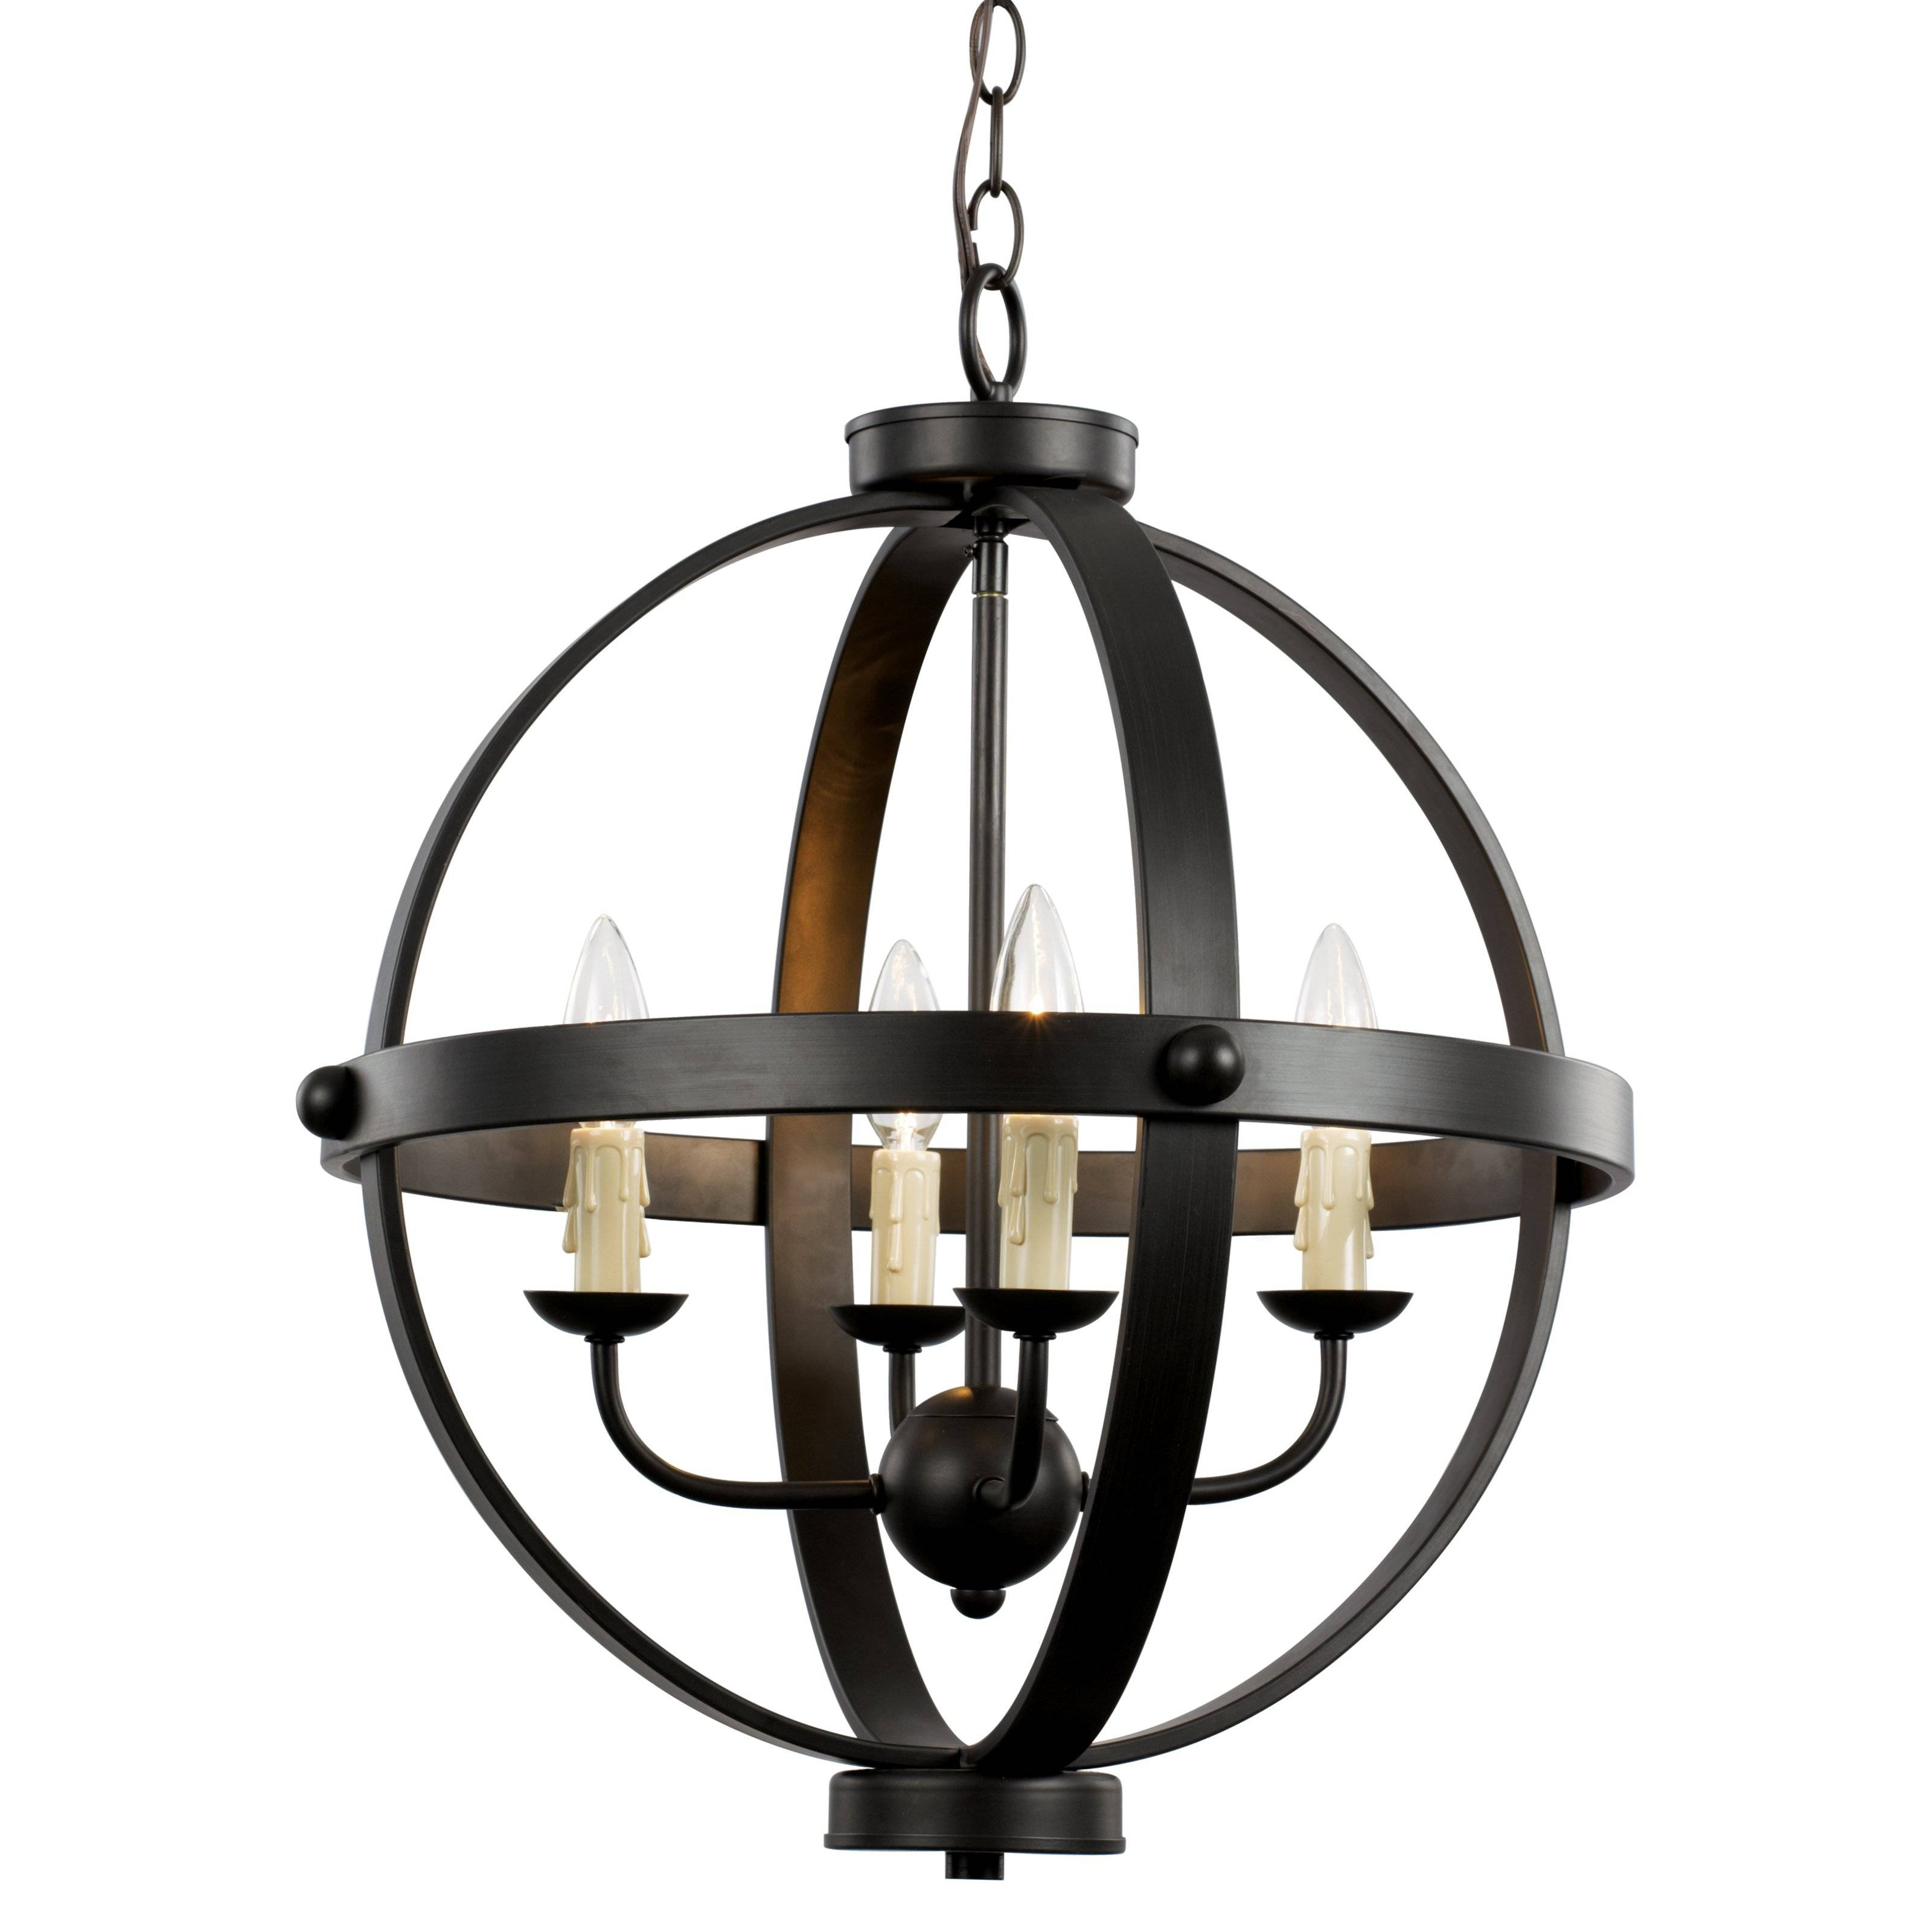 Modern Chic Old World Globe Pendant Light with World Globe Pendant Lights (Image 11 of 15)